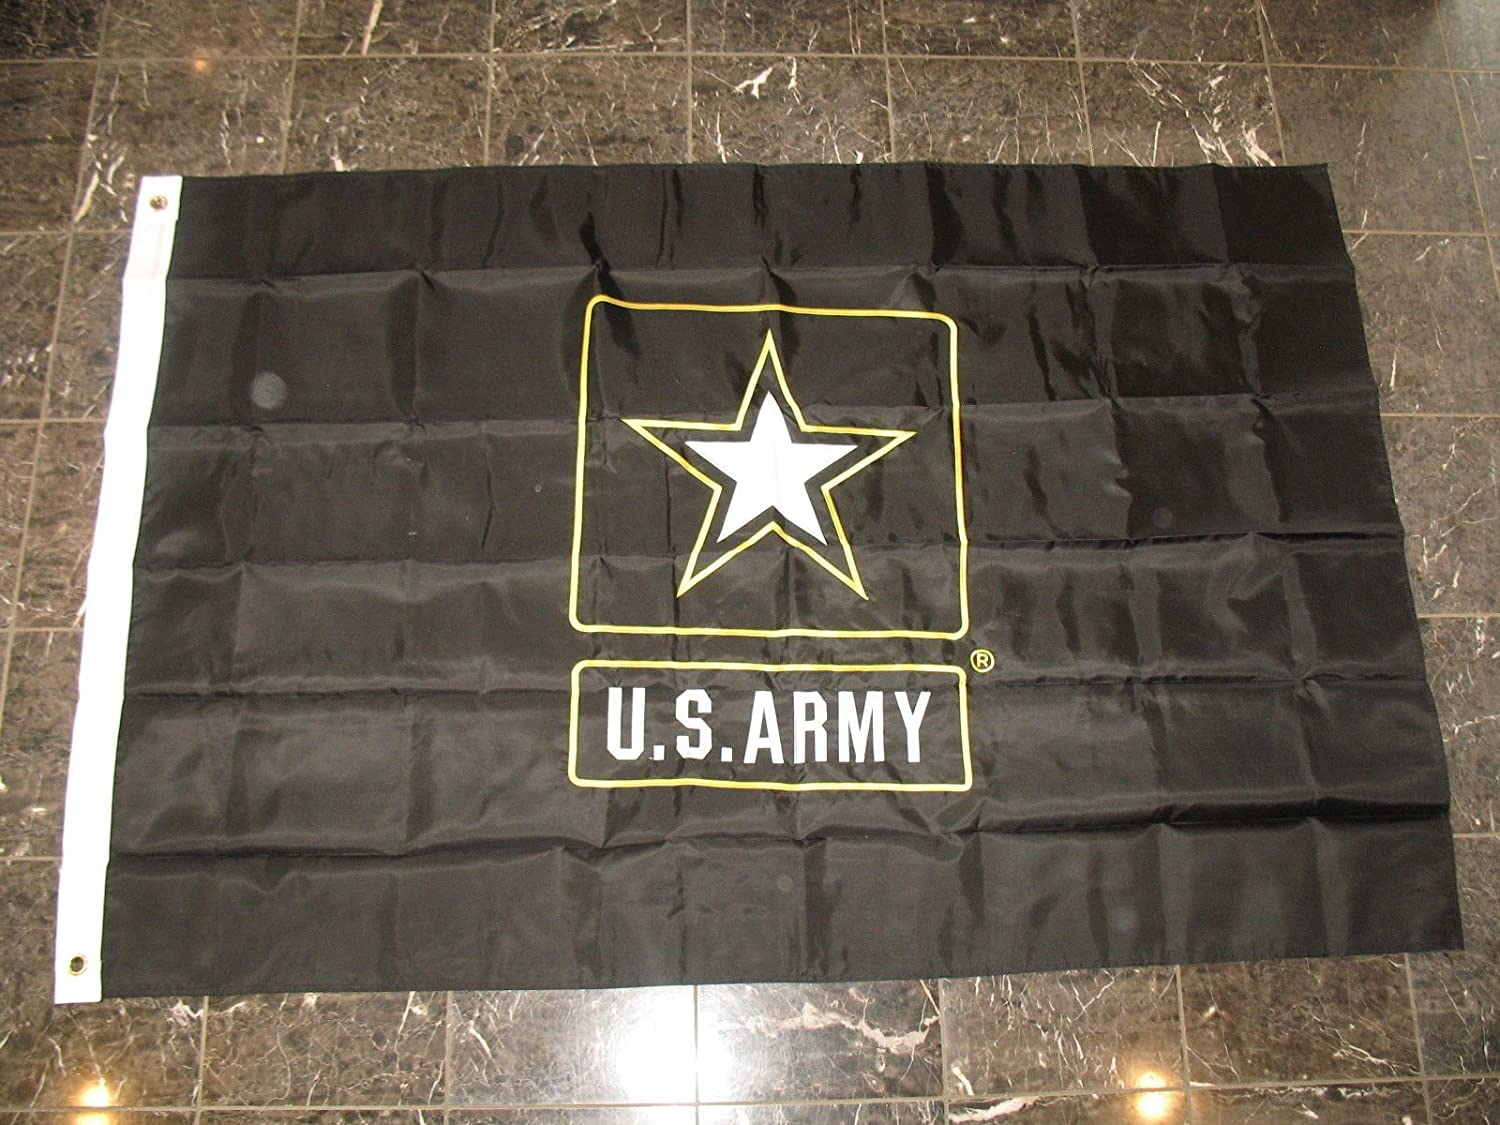 4X6 Embroidered Sewn Omaha Mall U.S. Gorgeous Black Army Star Sided Fla Double Nylon